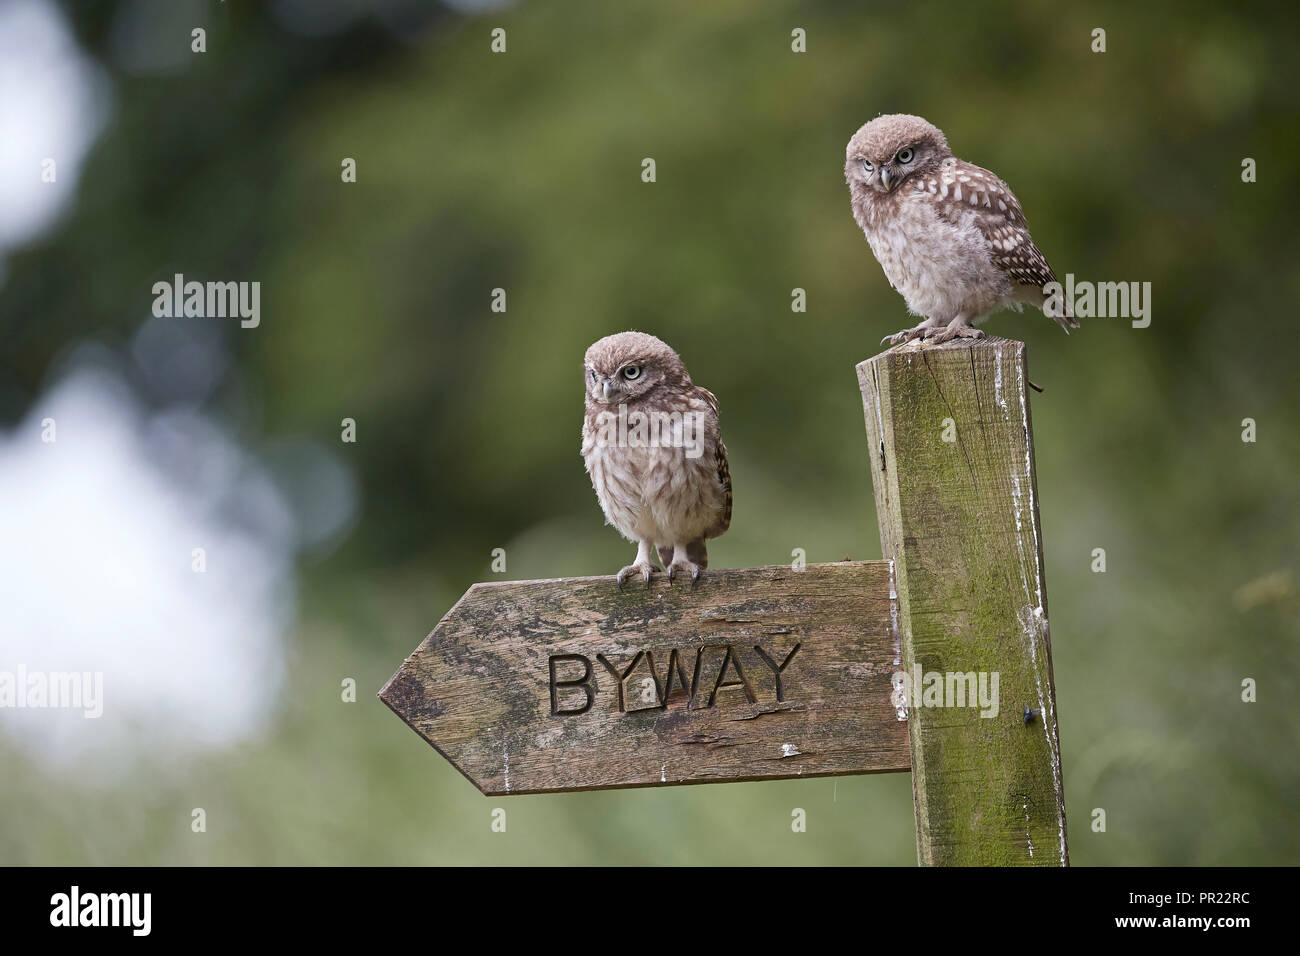 A pair of, two, Little Owl owlets standing on a byway signpost, Athene noctua, East Yorkshire, UK - Stock Image